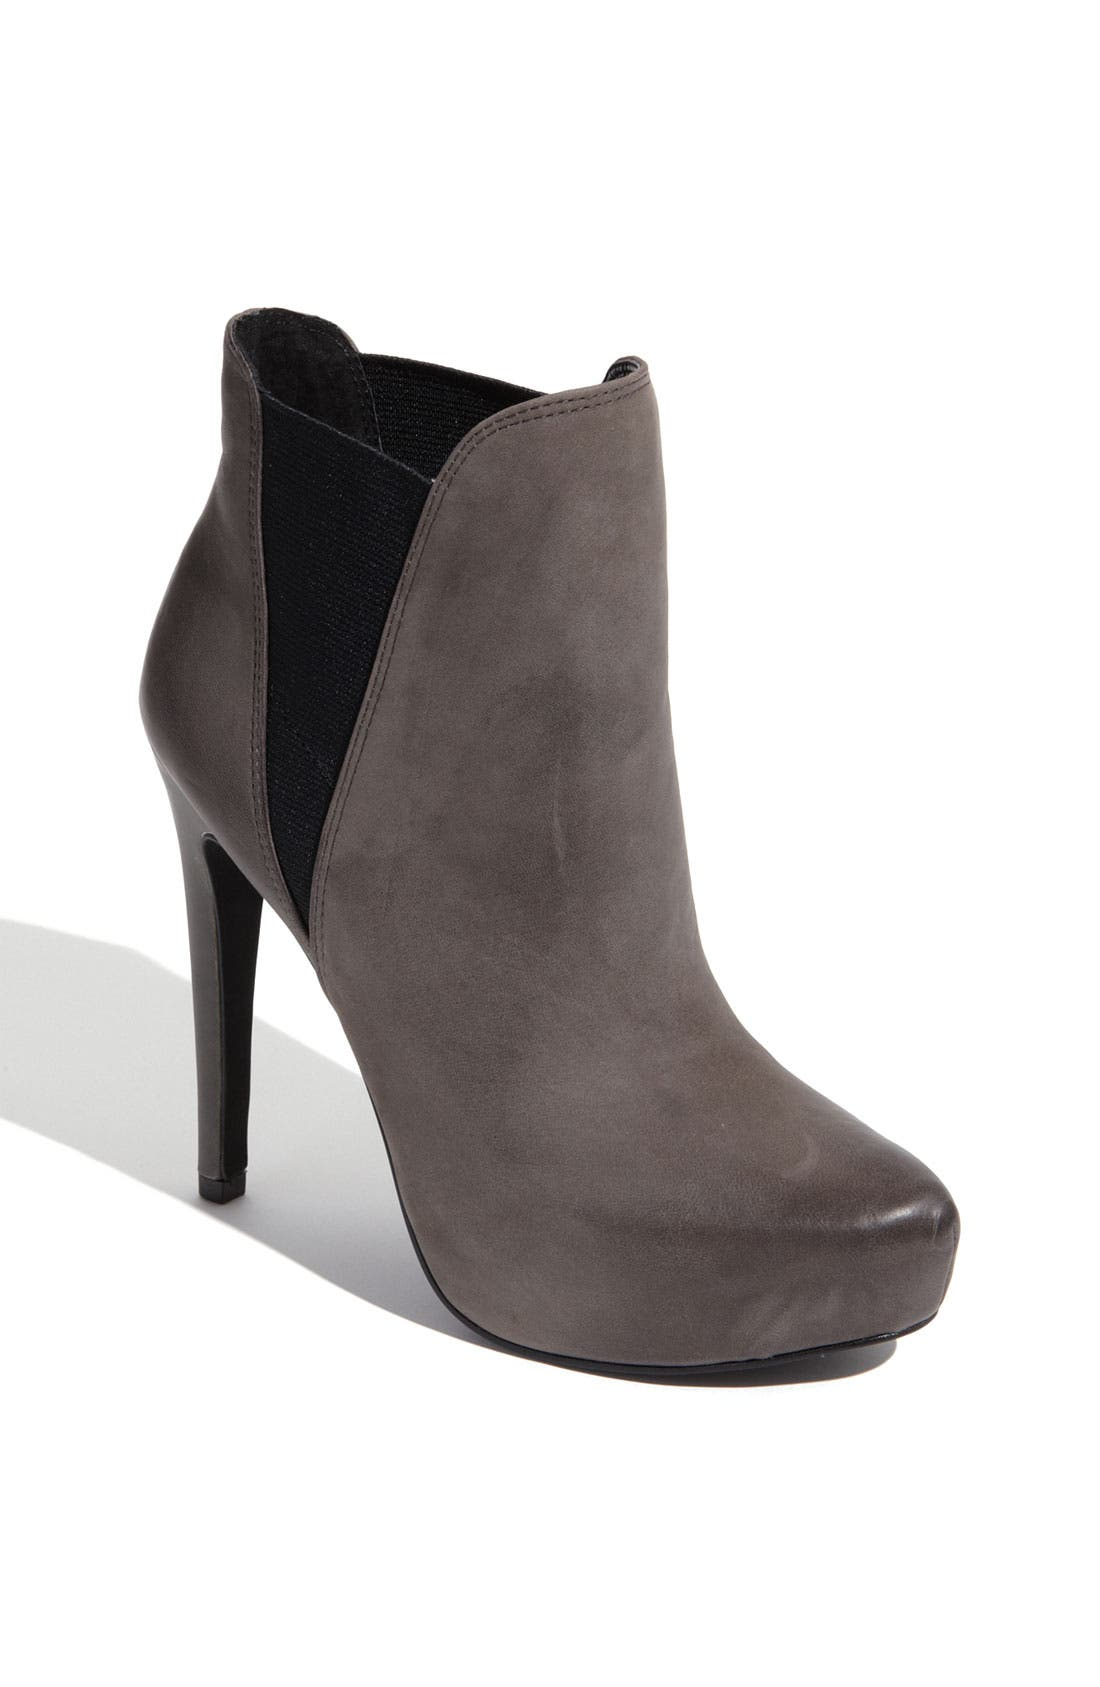 Main Image - Jessica Simpson 'Francis' Bootie